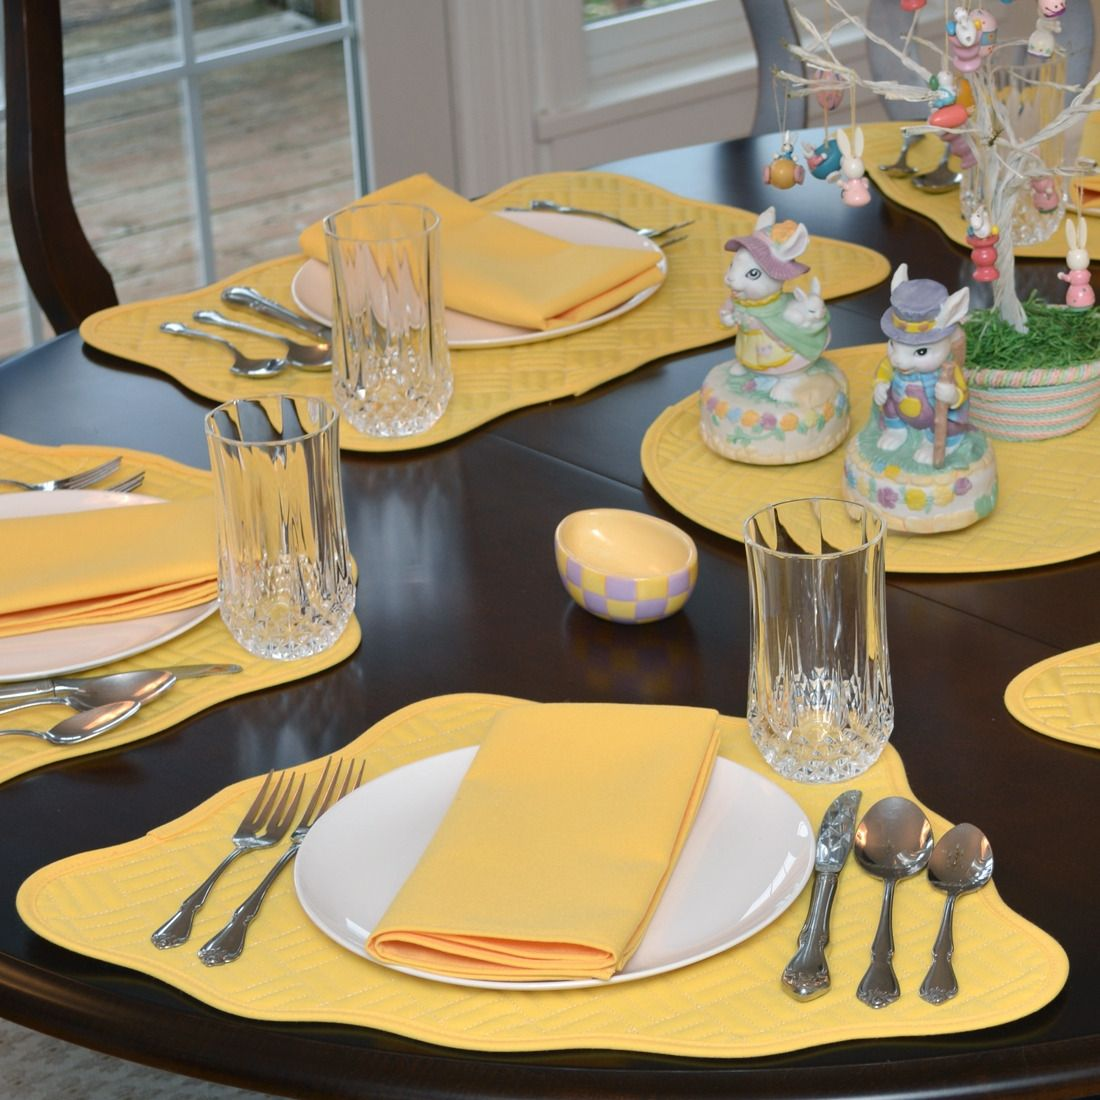 100 Wedge Placemats For Round Table Cool Apartment Furniture Check More At Http